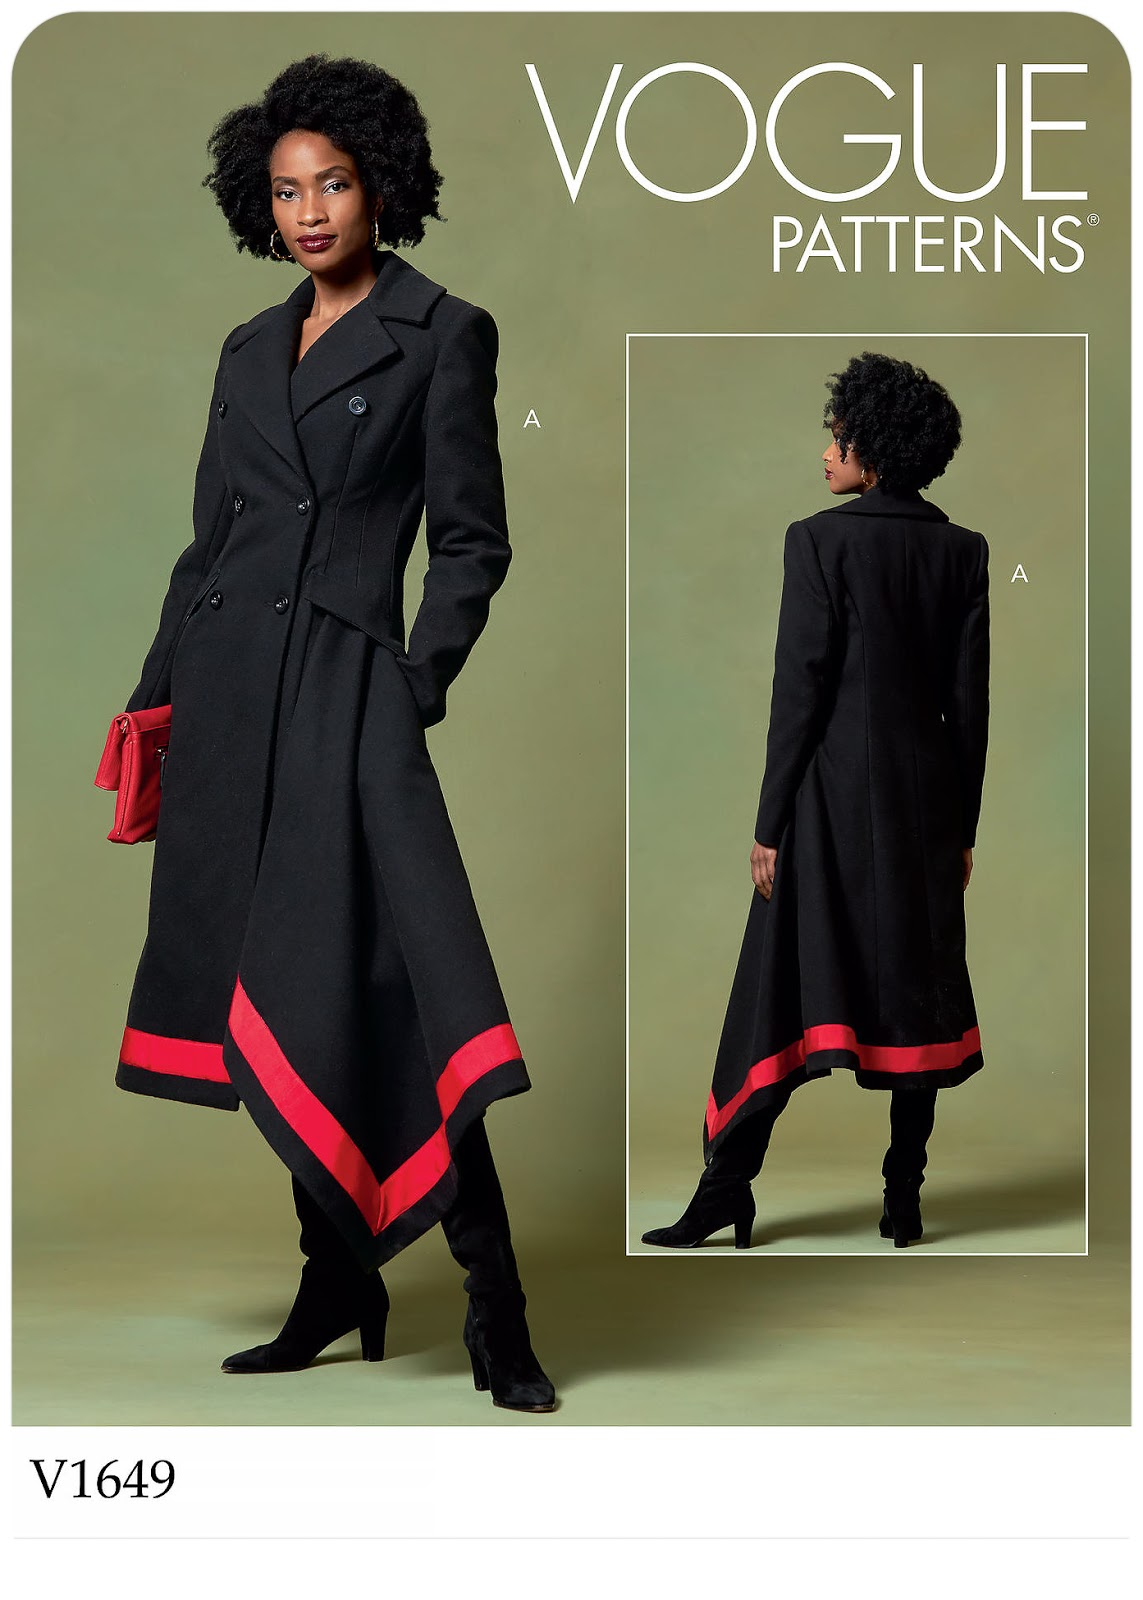 Vogue Patterns 1649 - #V1649